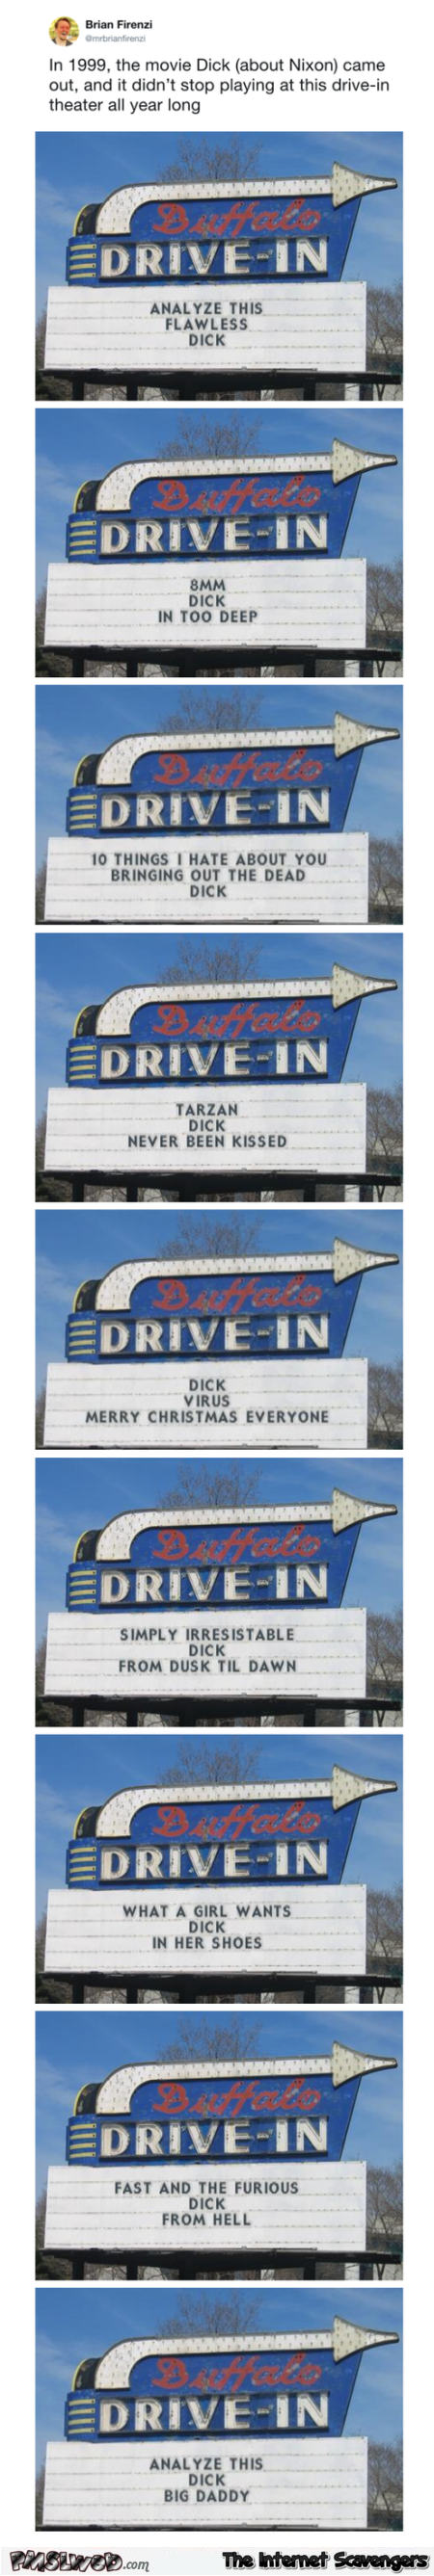 Dick was played in this drive-in all year long humor @PMSLweb.com